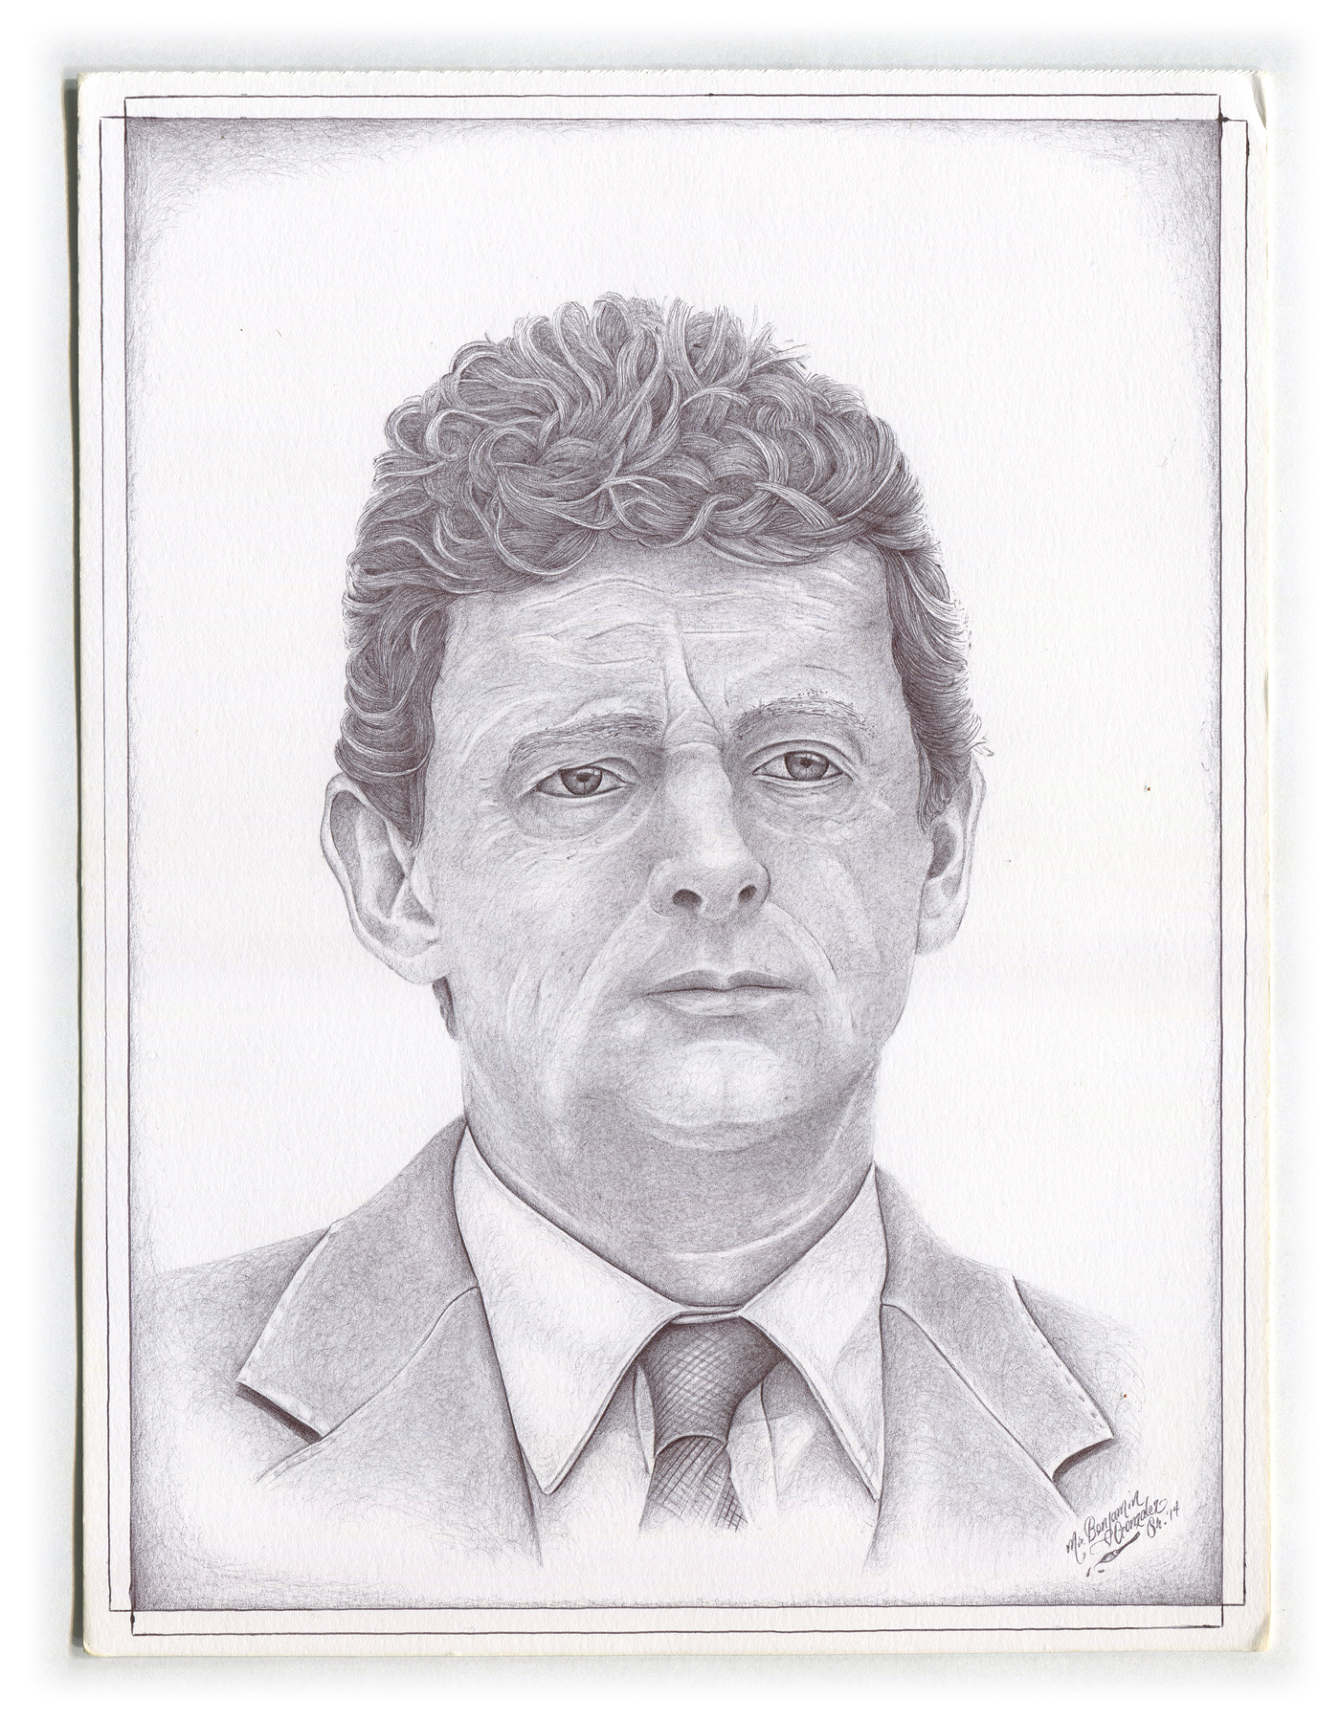 Former CEO of BP Oil as drawn by a man serving 9 years for robbery -